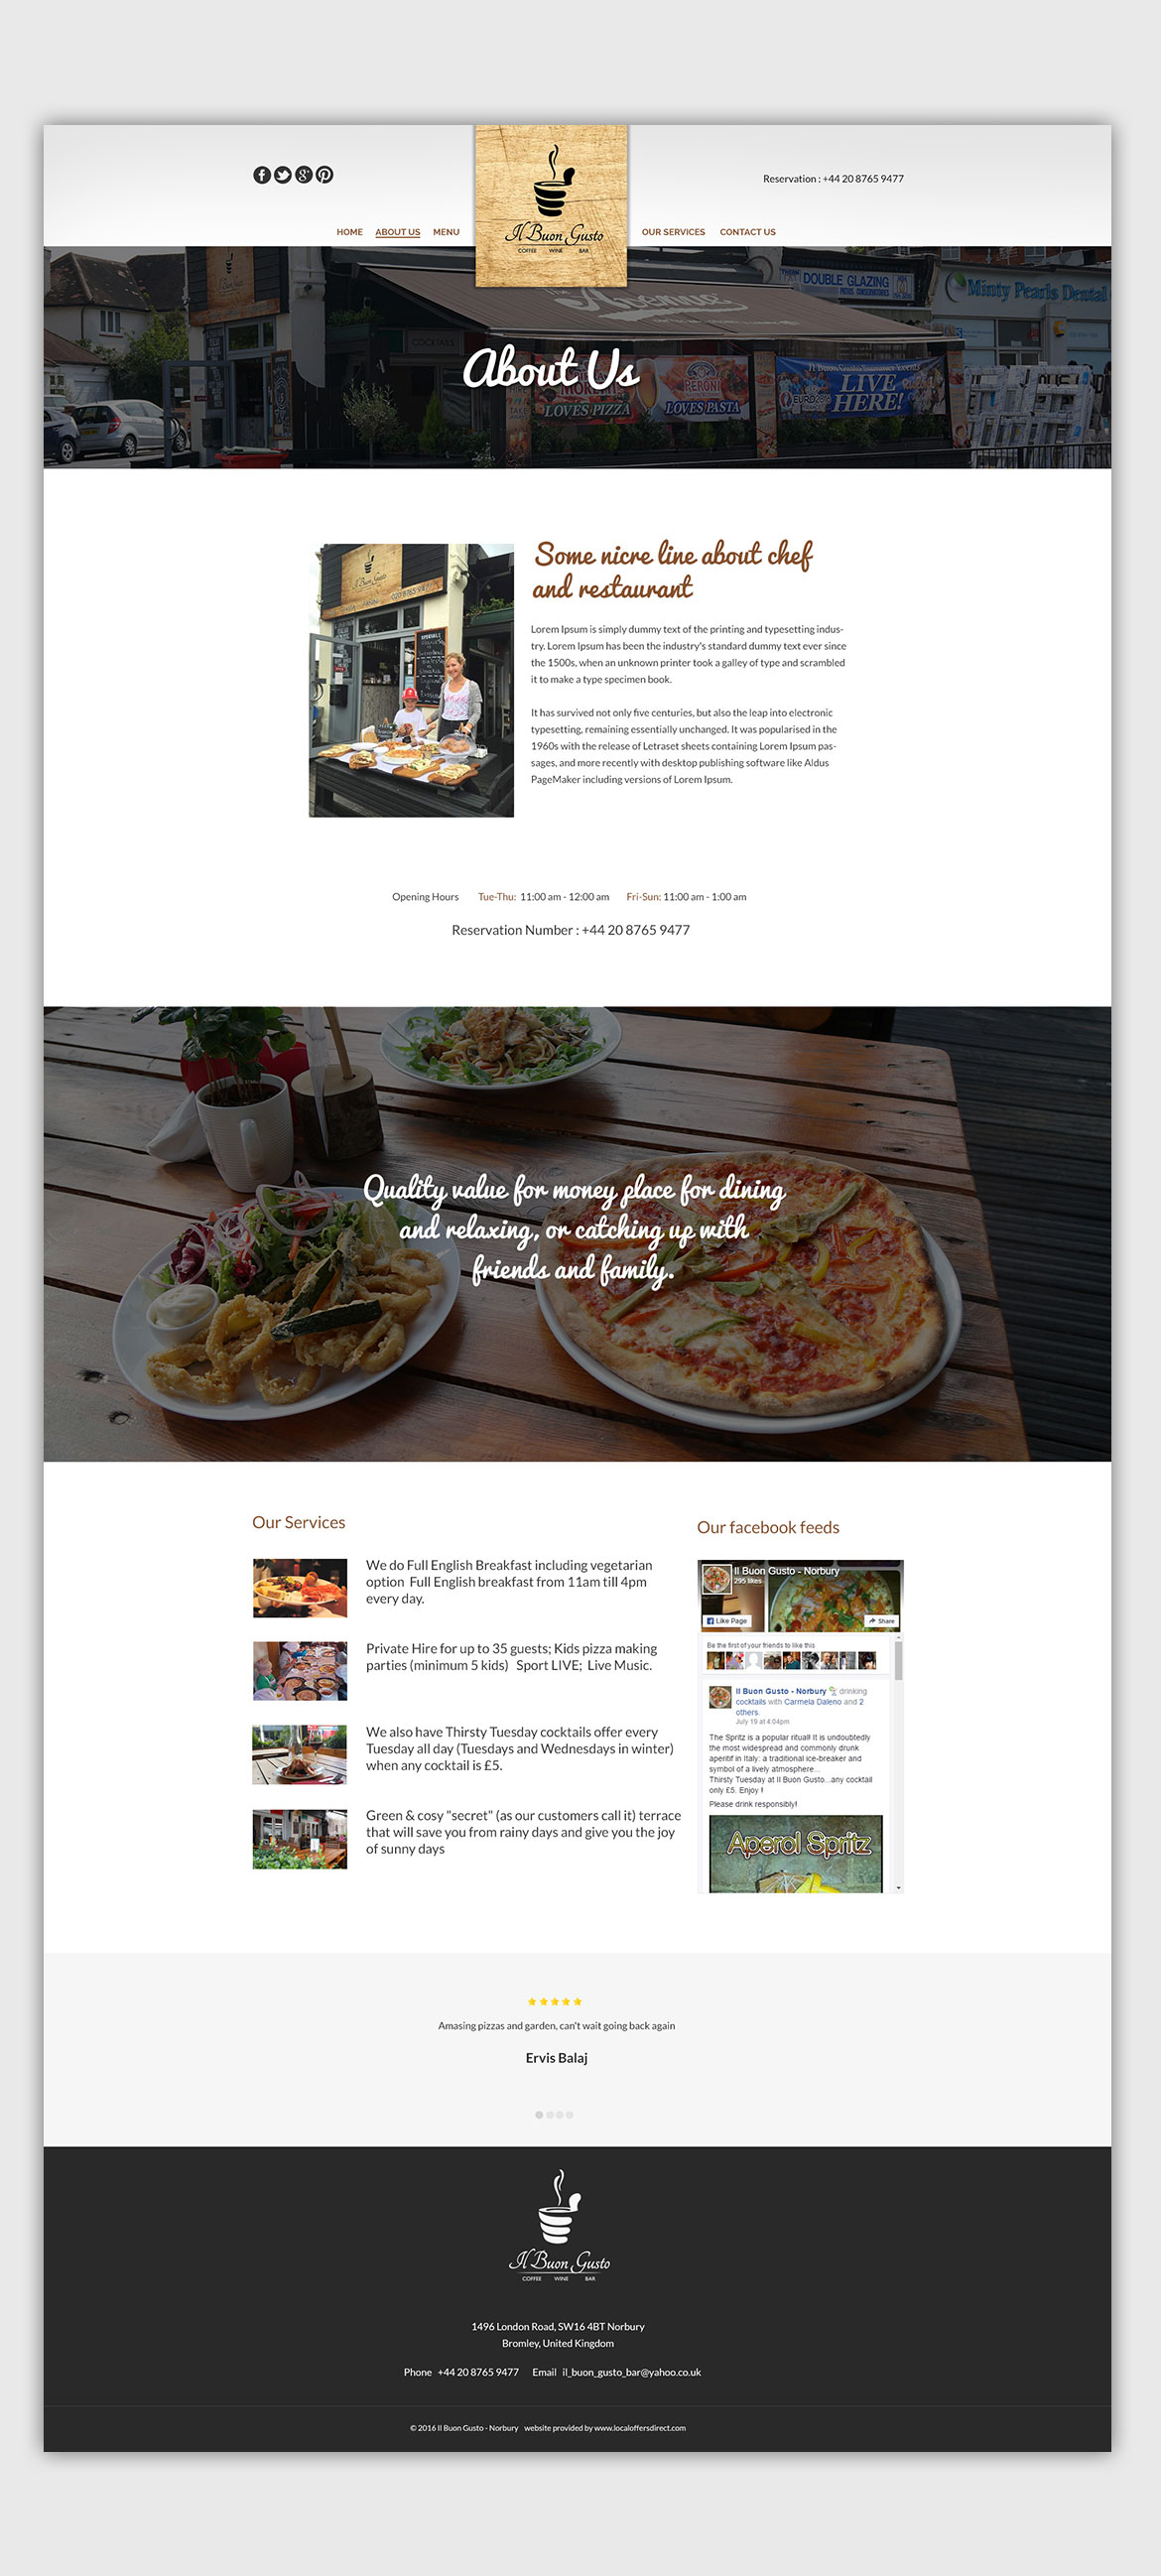 uk-restaurant-website-design-and-development-aboutus